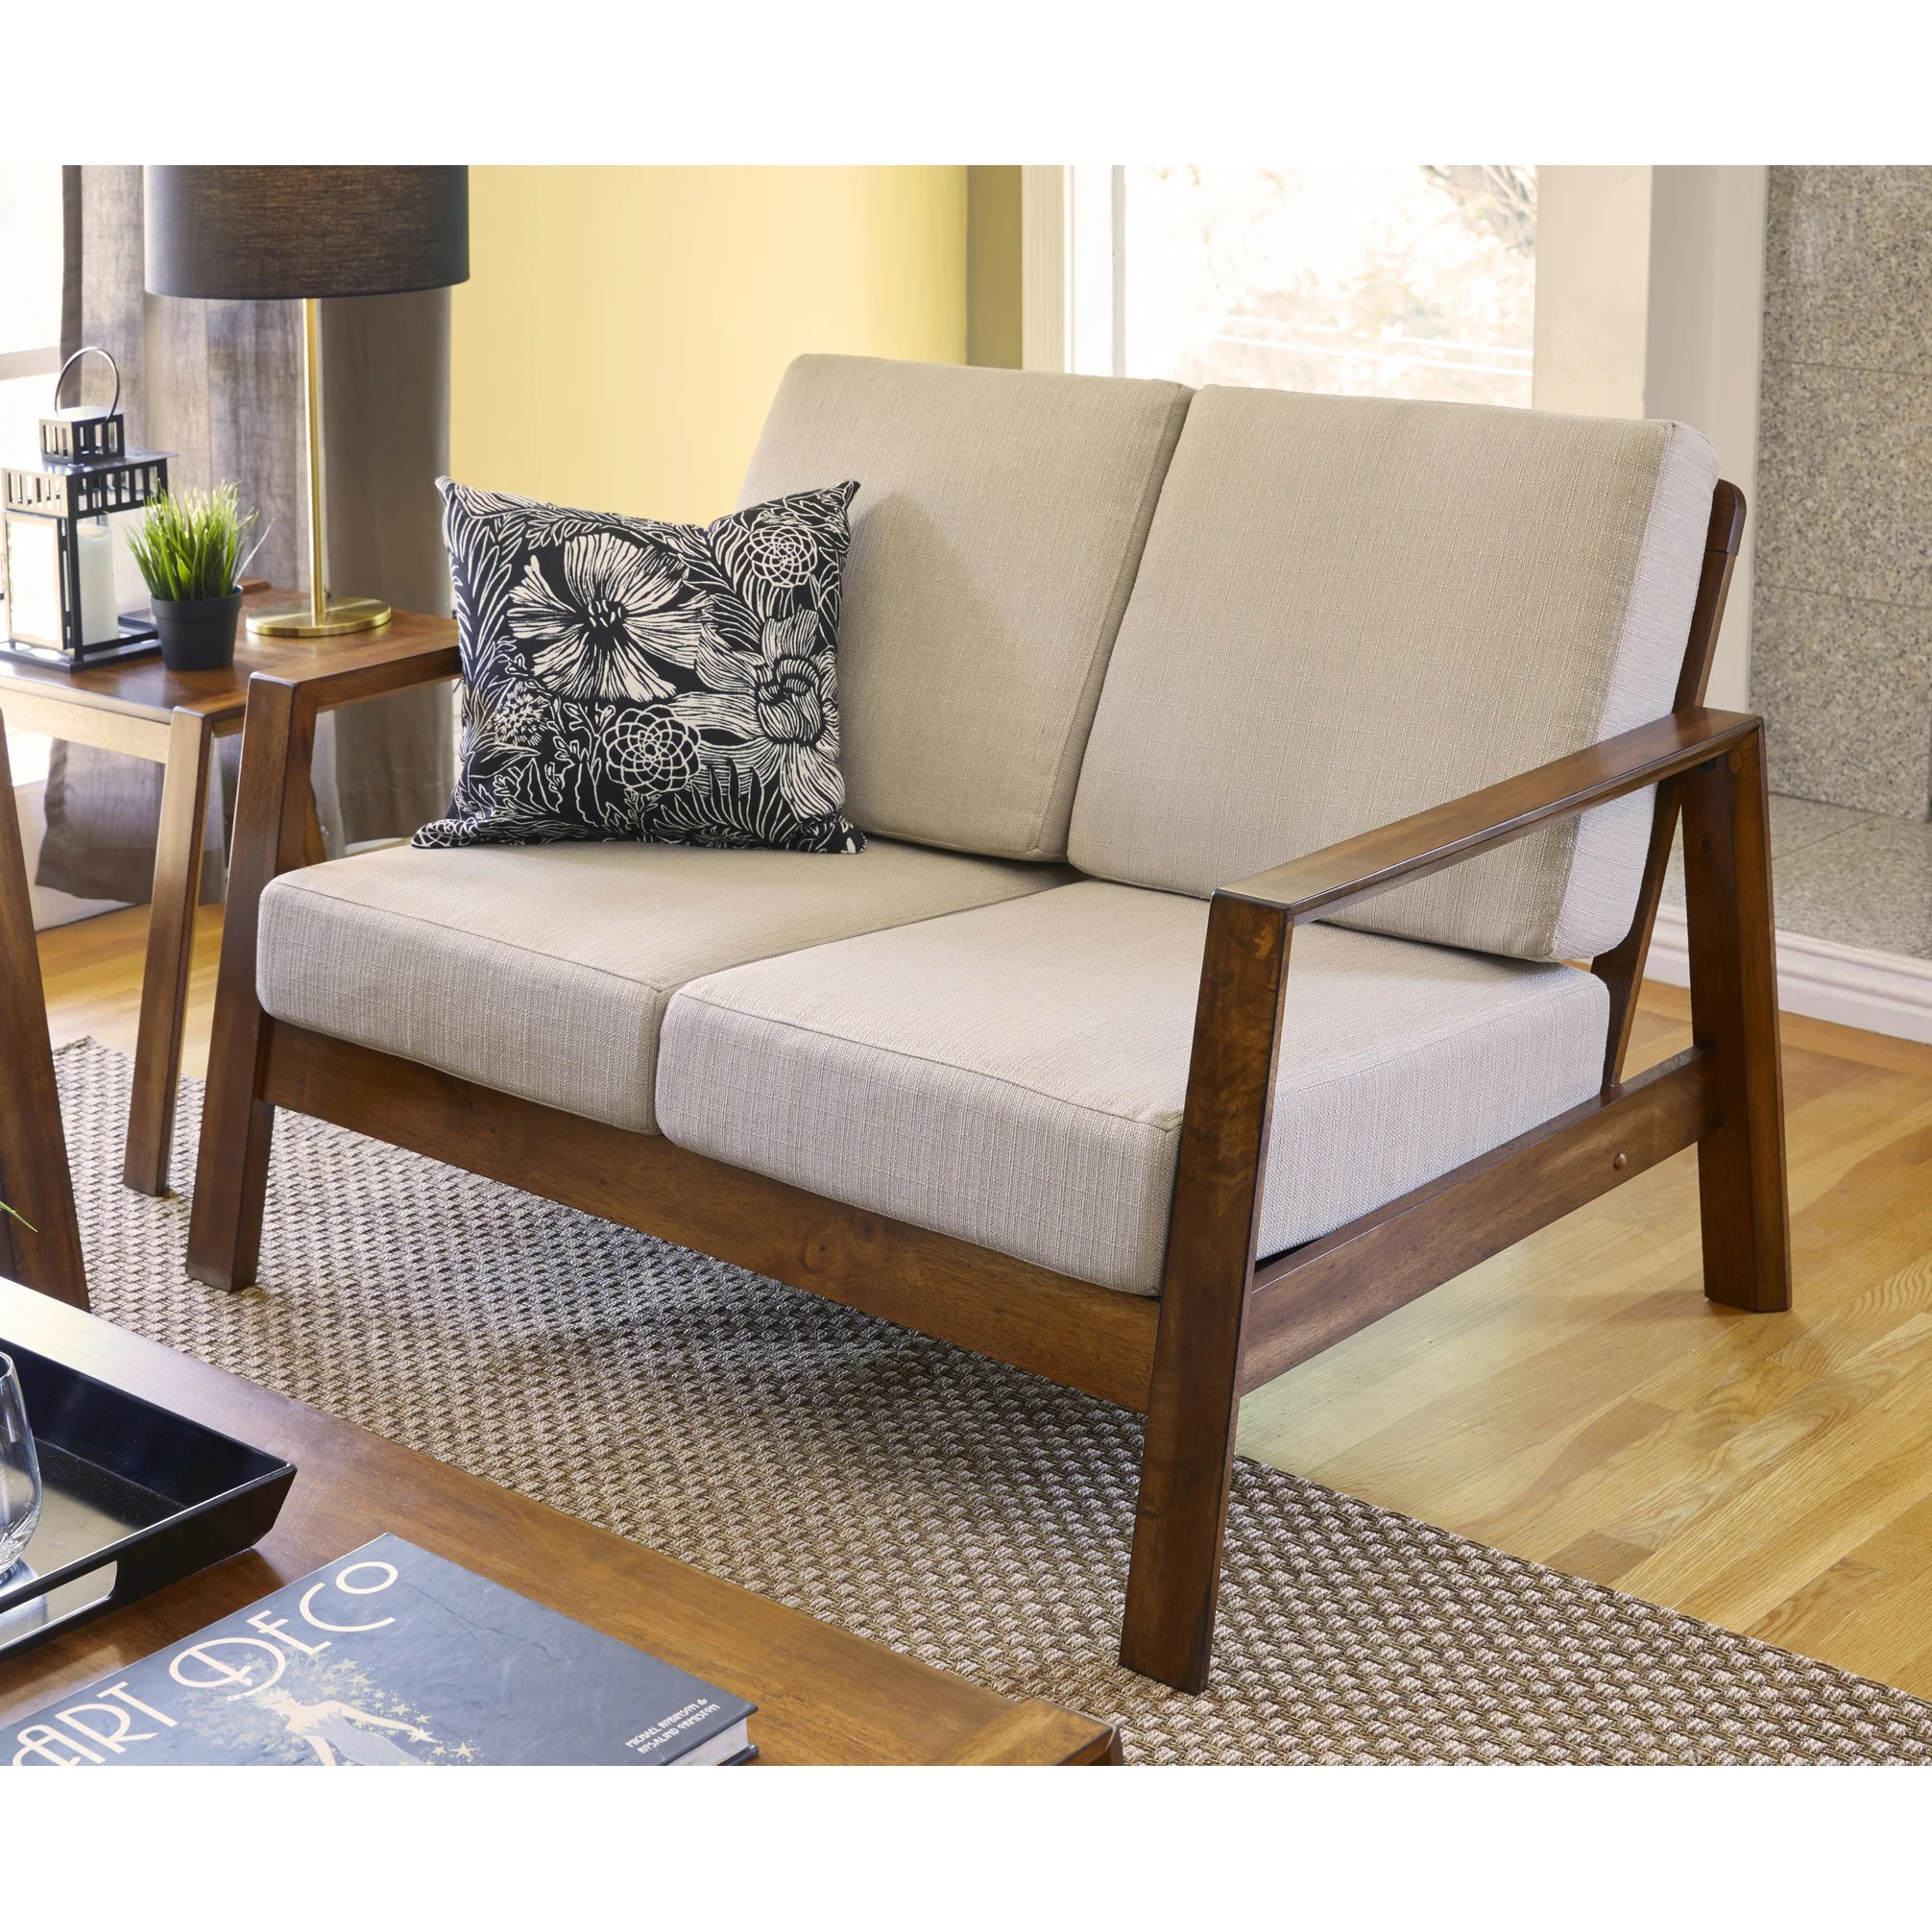 Couch Couch Buy Sofas Couches Online At Overstock Our Best Living Room